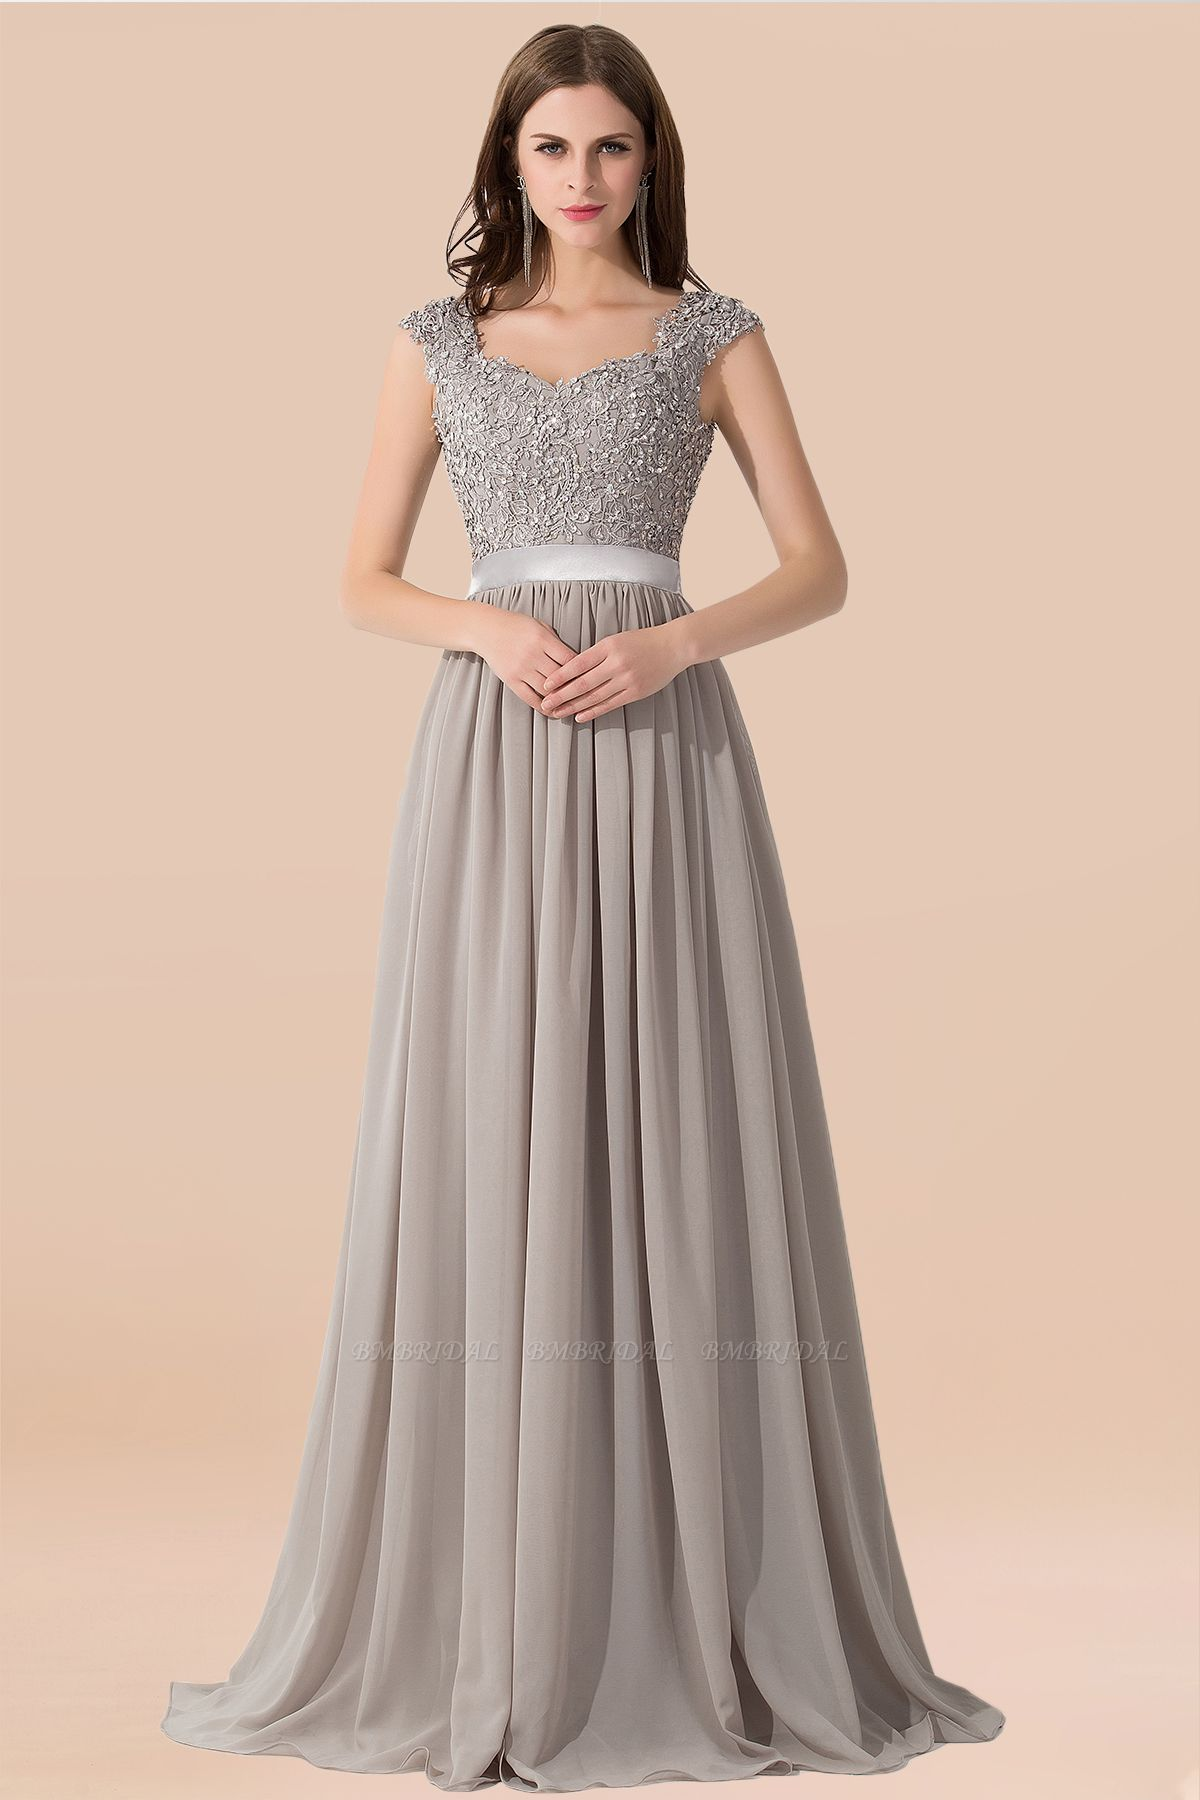 BMbridal Vintage Silver Sleeveless Long Bridesmaid Dress With Appliques